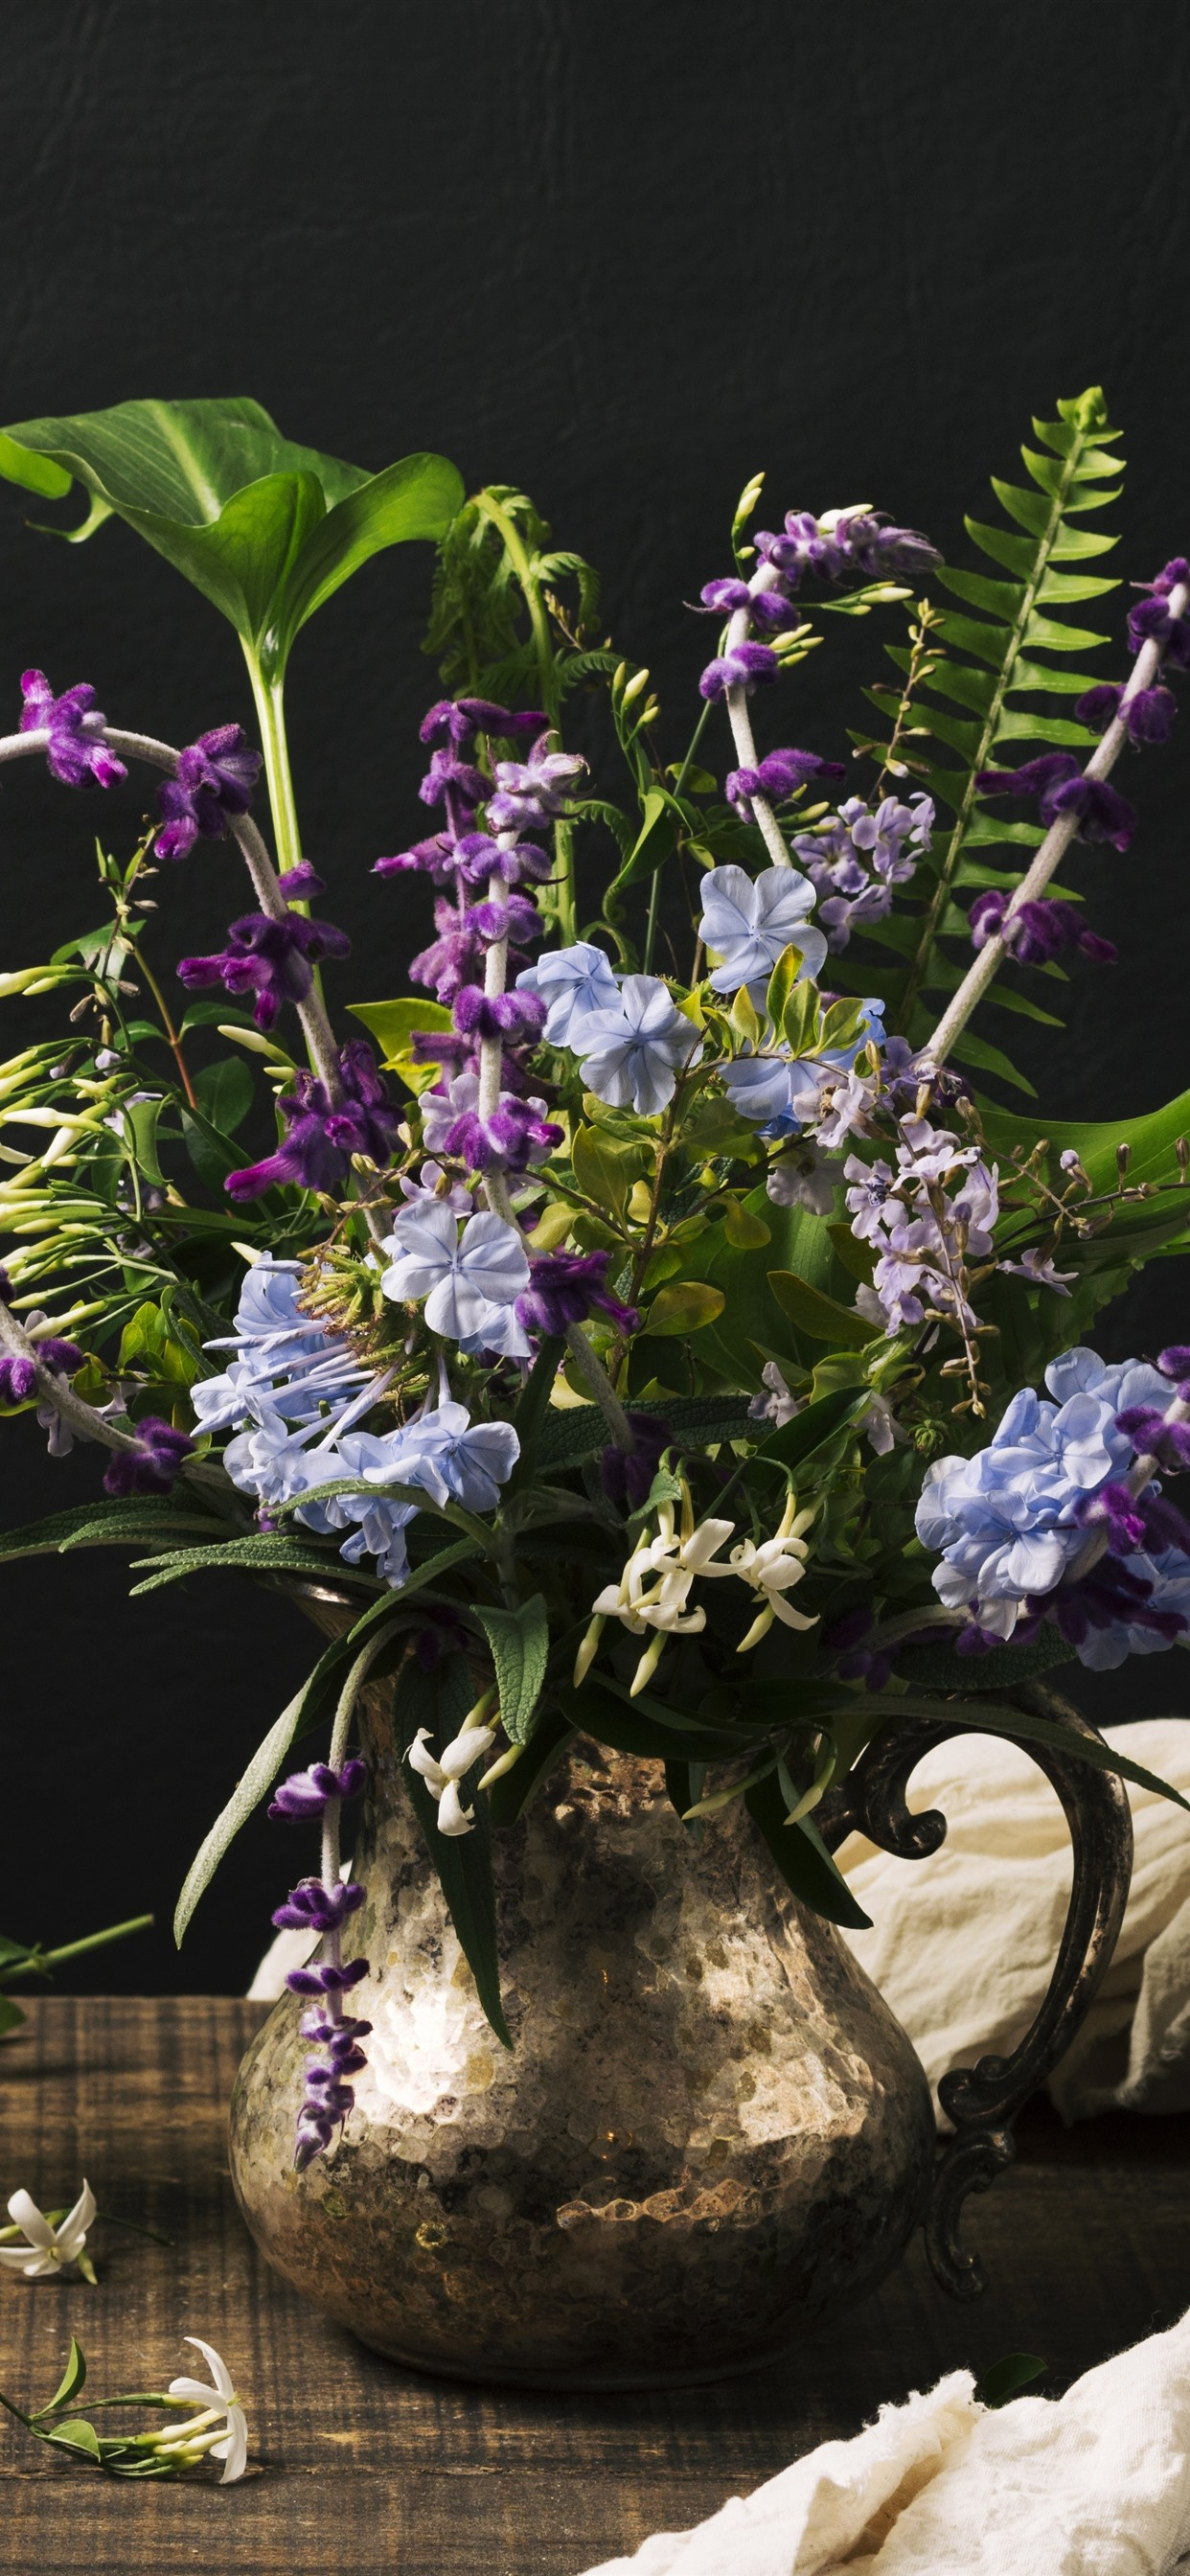 Purple And Blue Flowers Vase Black Background 1242x2688 Iphone